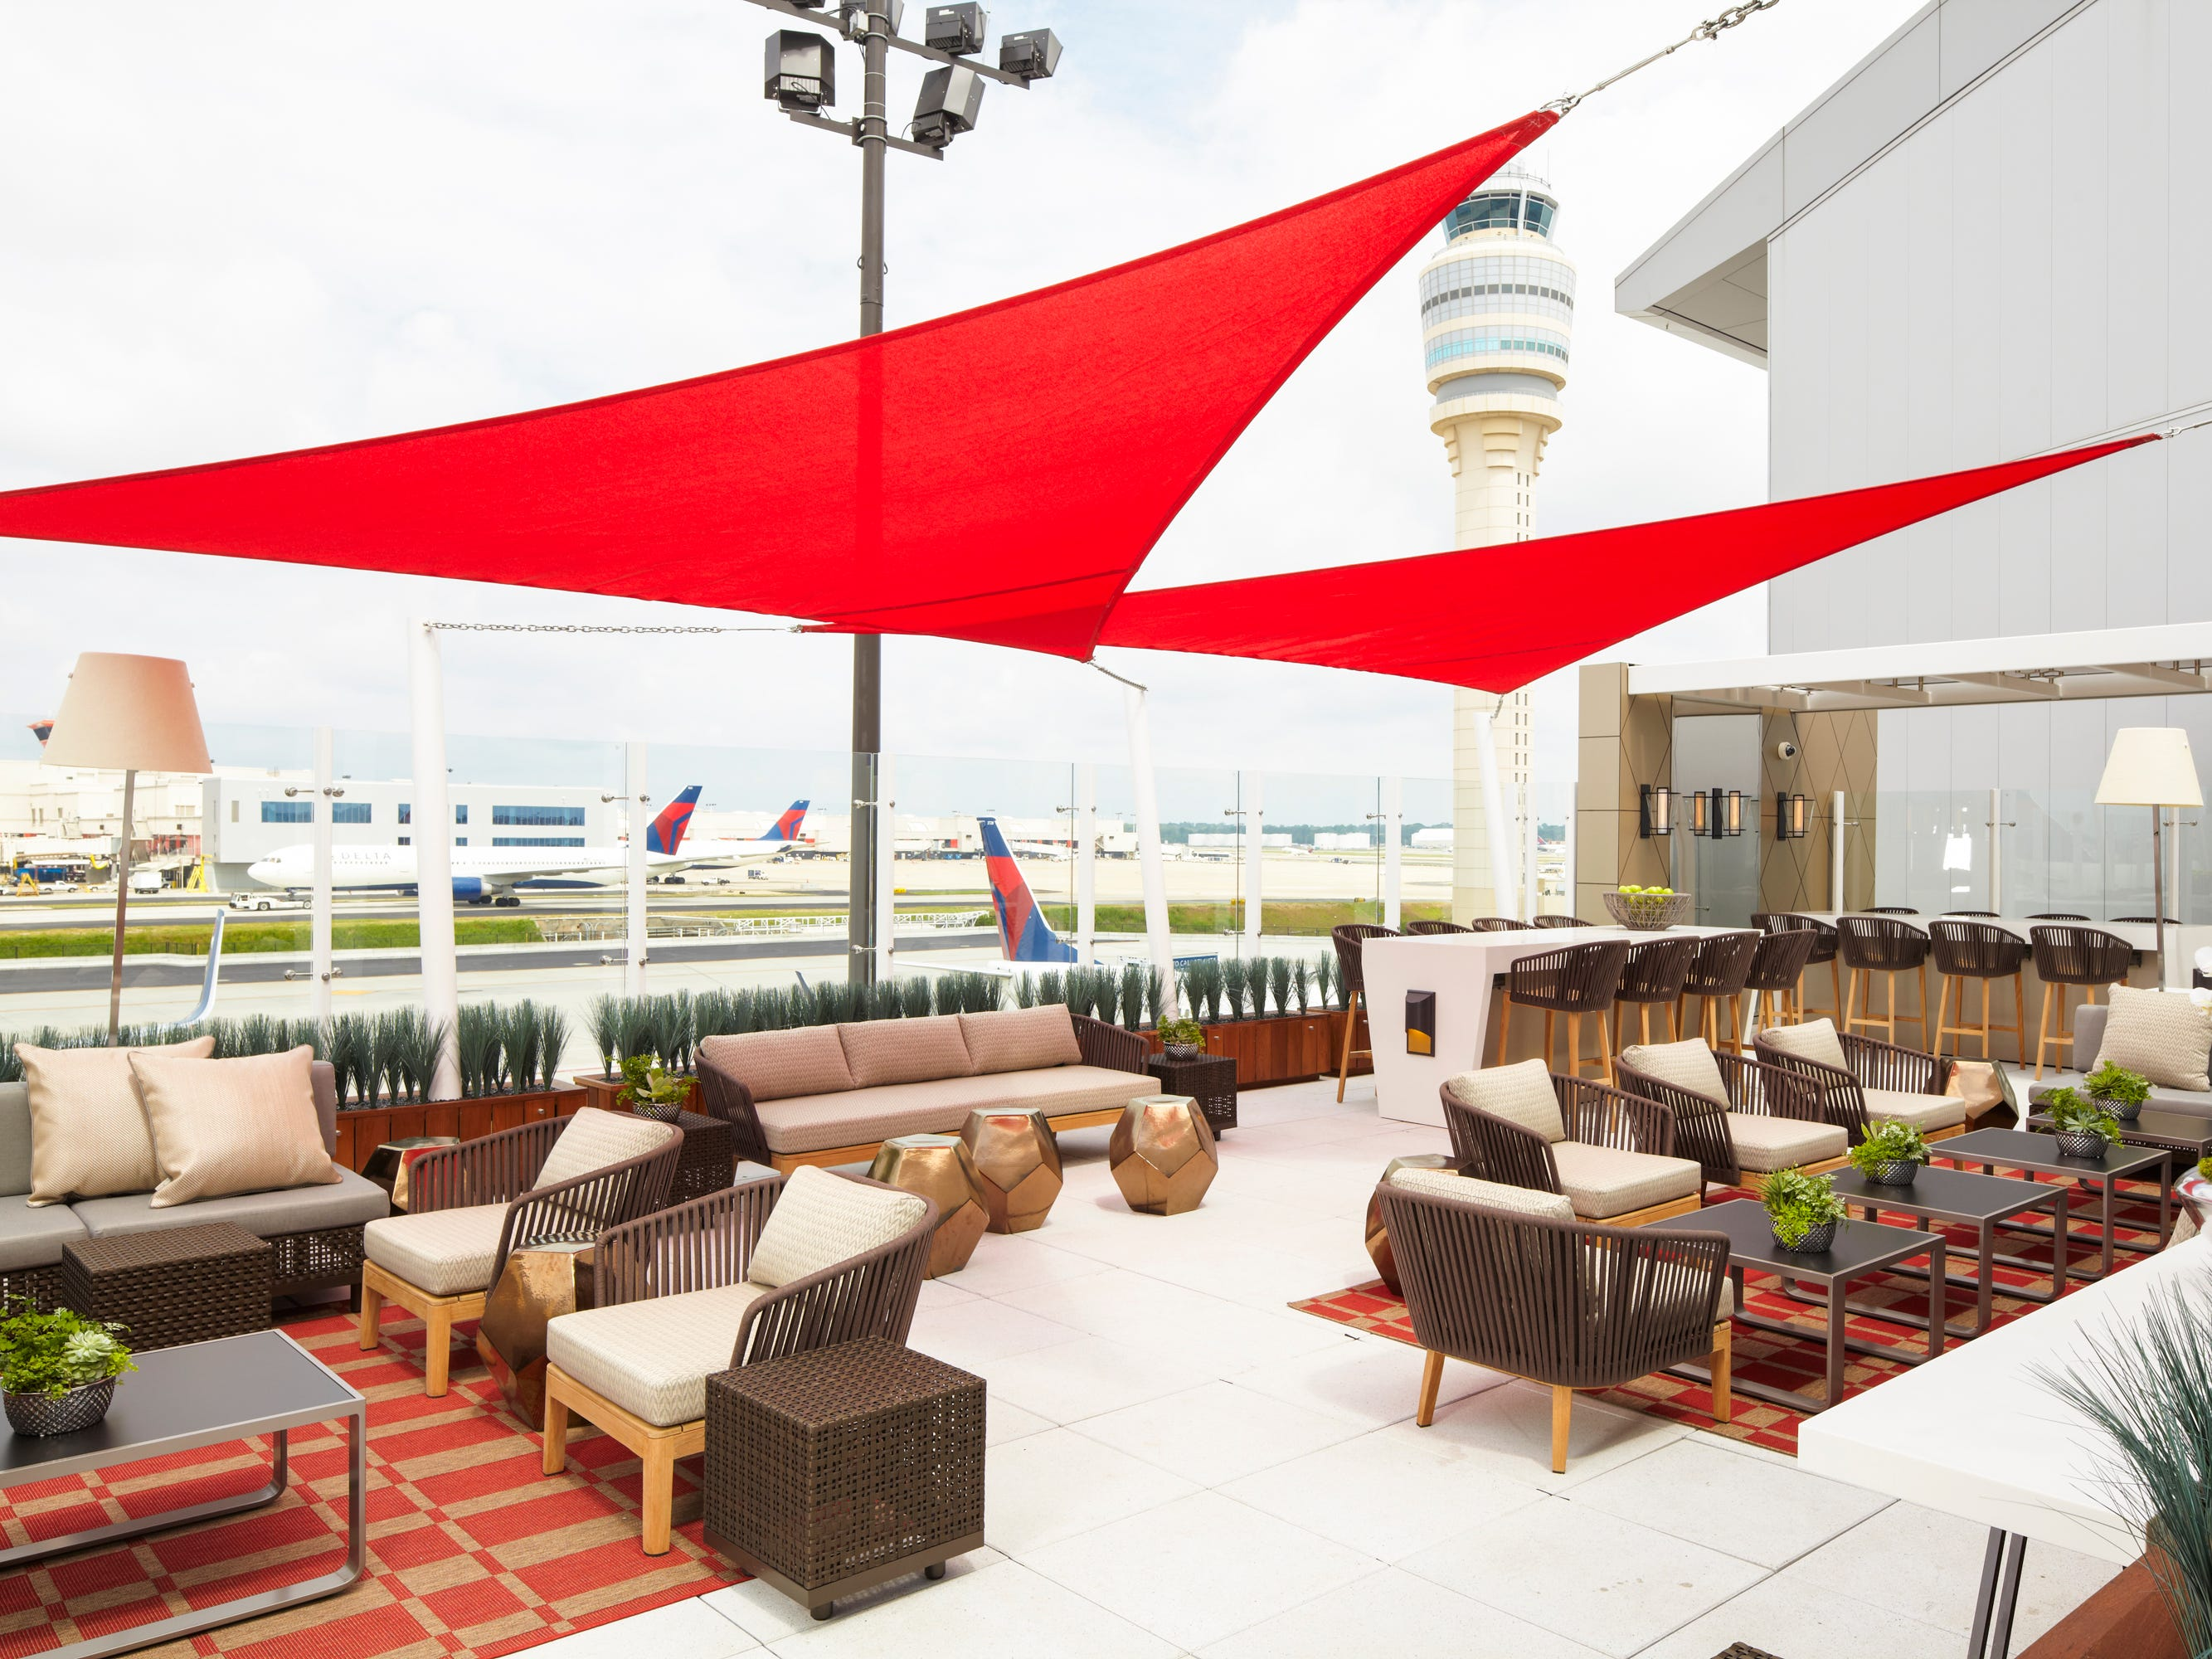 Best — and worst — U.S. airports for business travelers, according to new ranking